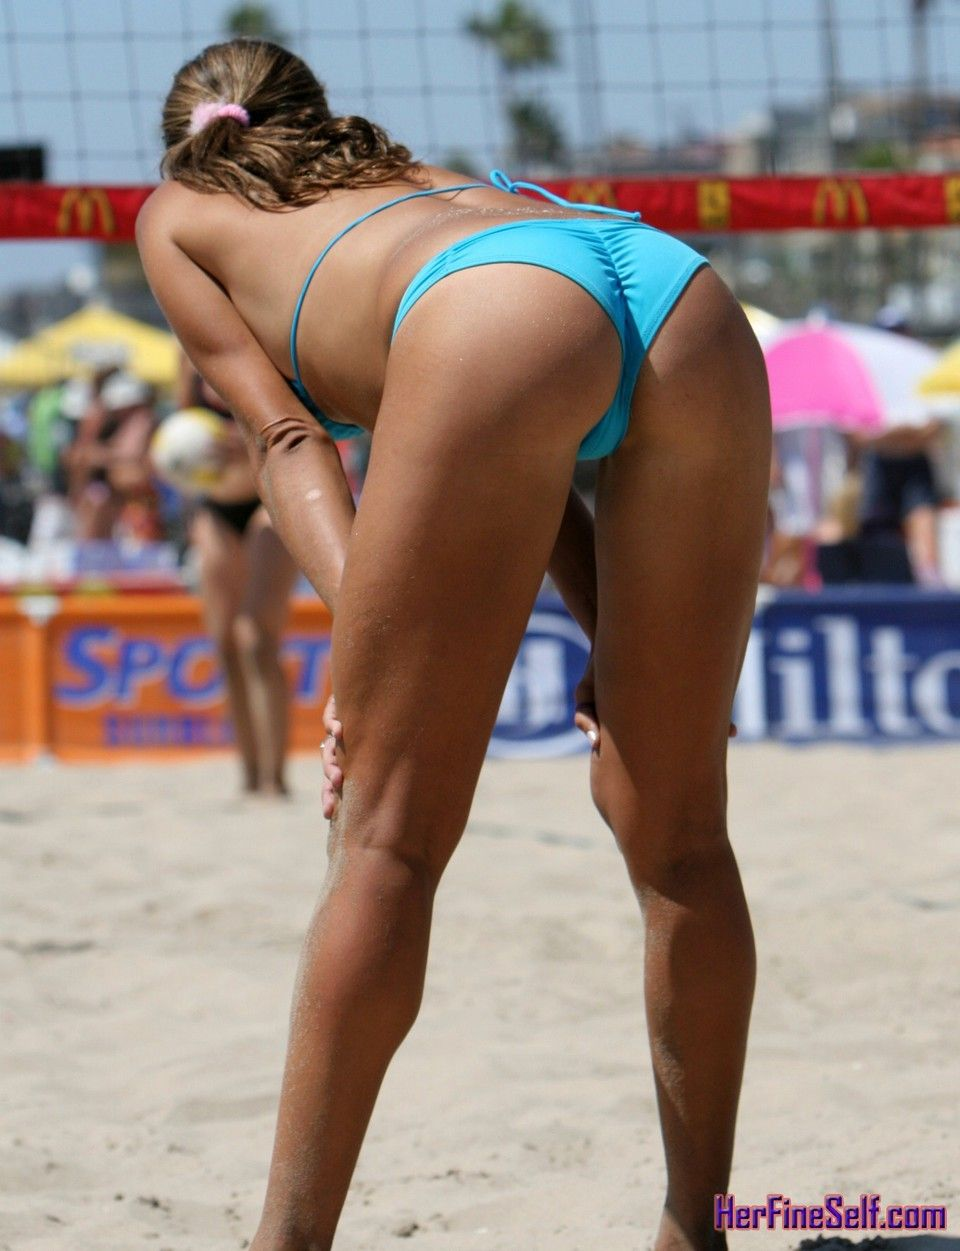 nude hot beach volleyball women